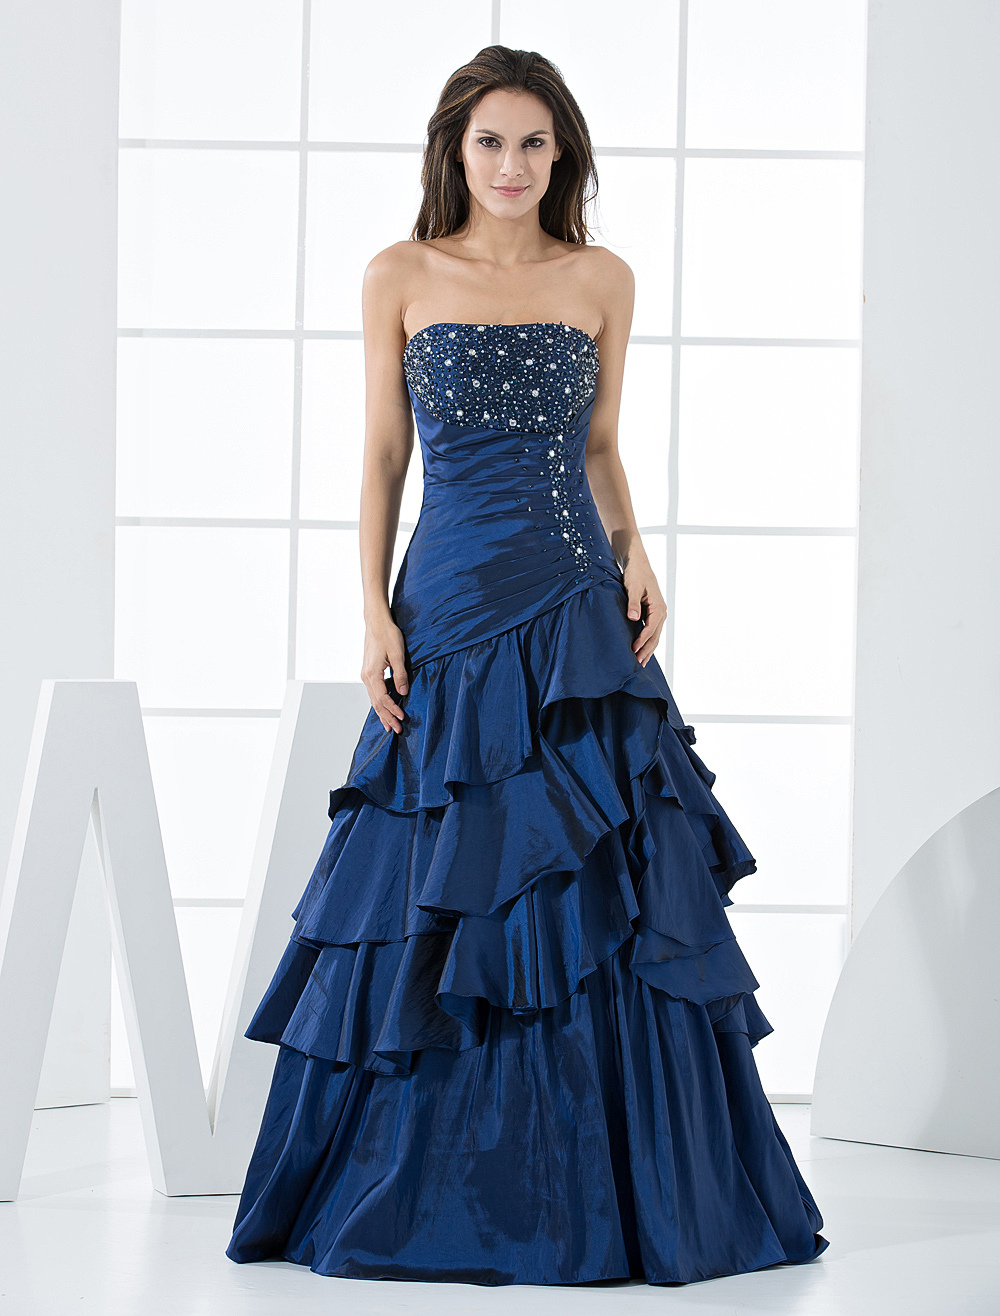 Royal Blue Taffeta Strapless Floor Length Prom Dress